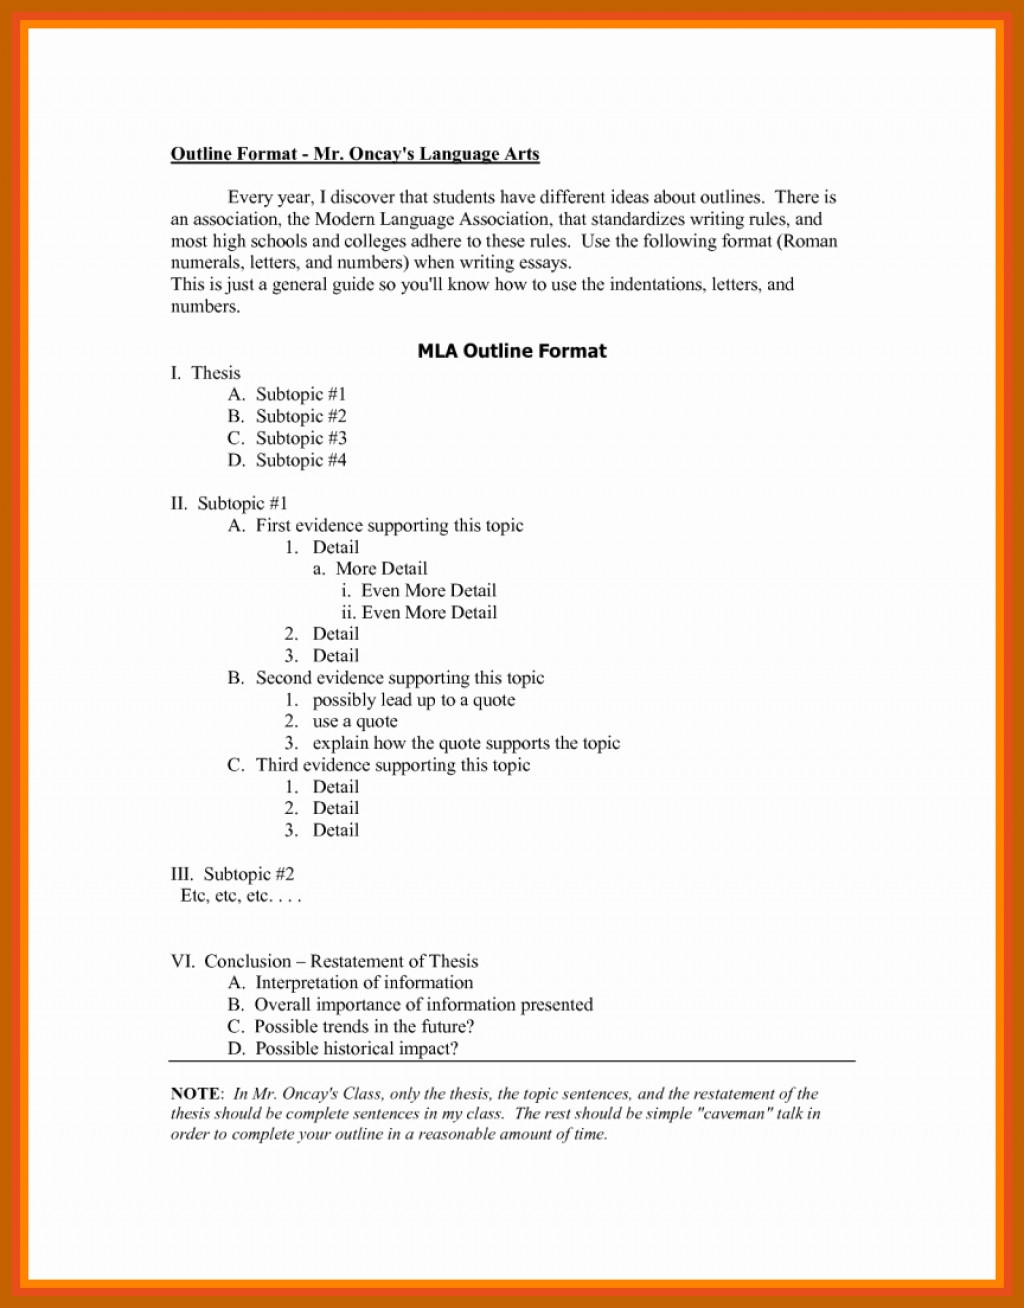 002 Mla Style Outline For Research Paper Format Best Of Unique Large